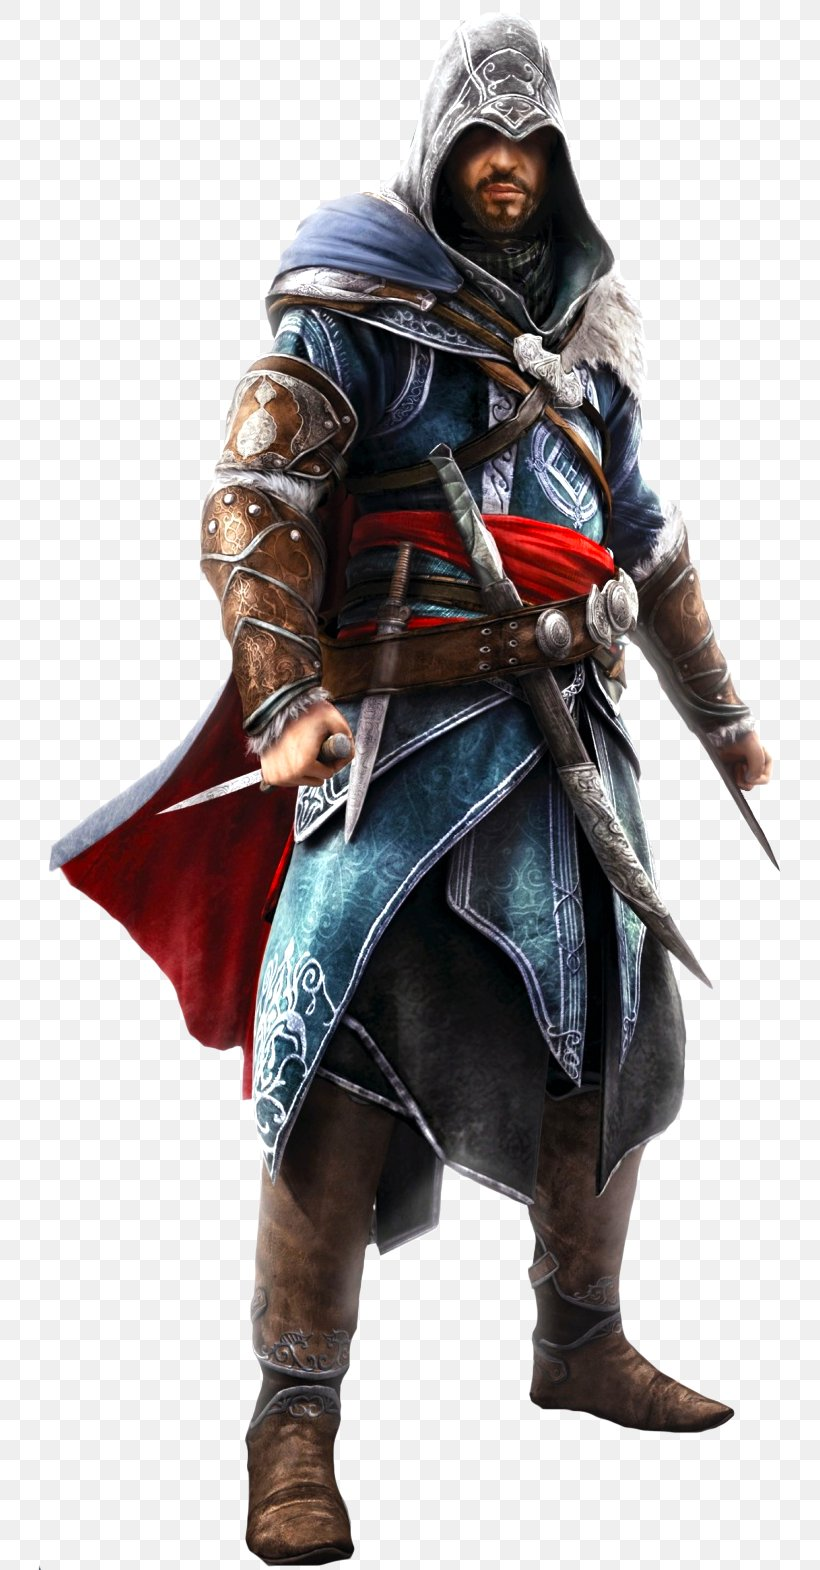 Assassins Creed III Assassins Creed: Brotherhood Assassins Creed: Revelations, PNG, 762x1570px, Assassins Creed Ii, Action Figure, Altaxefr Ibnlaahad, Armour, Assassins Download Free